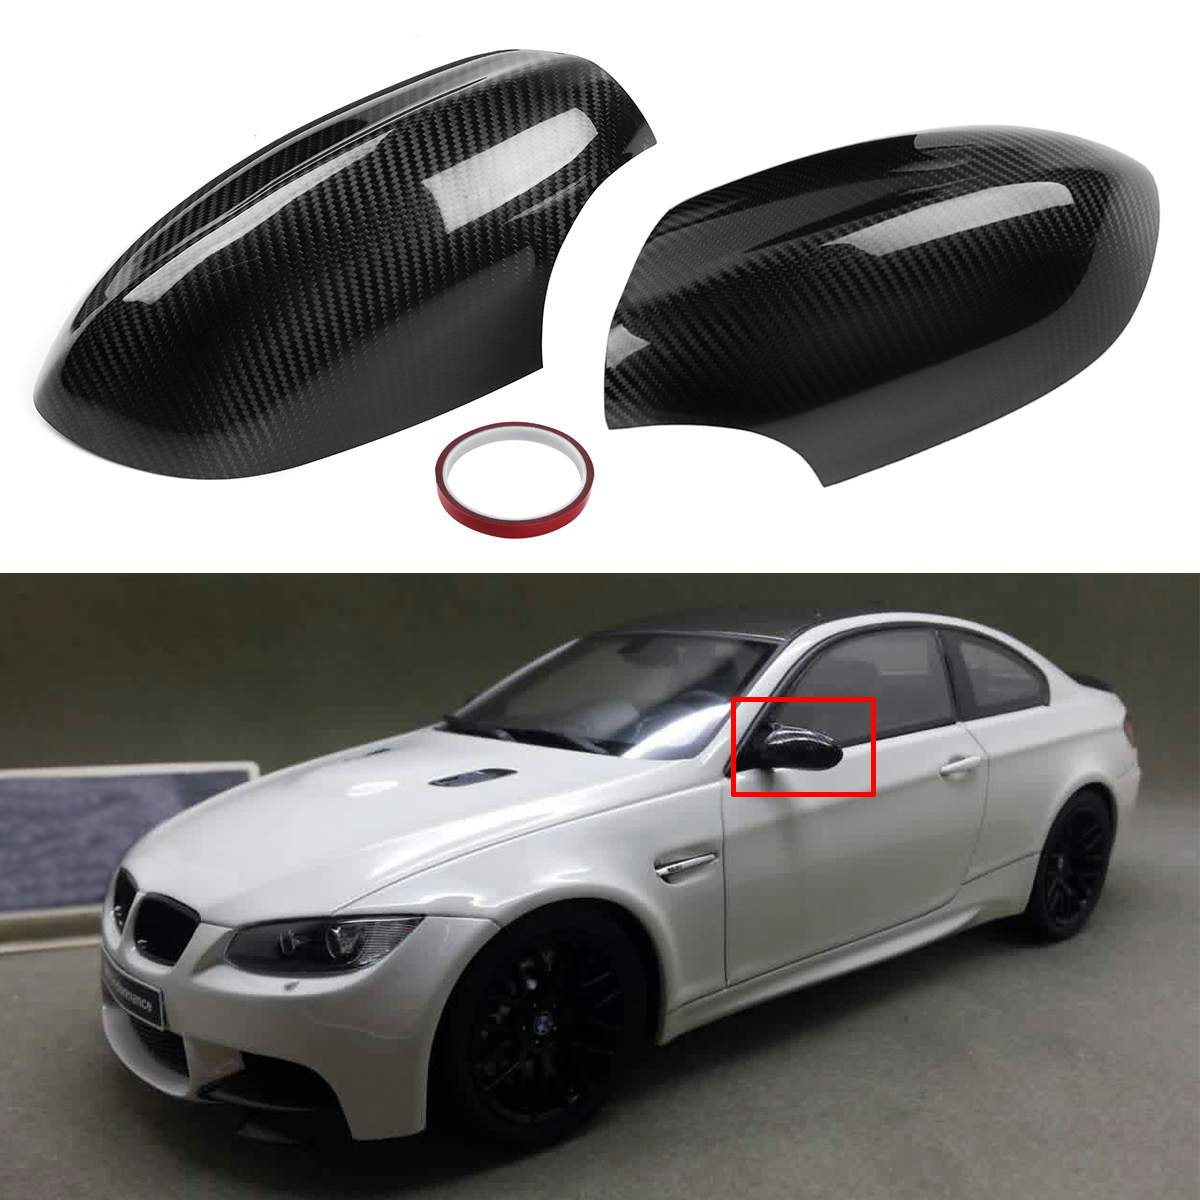 1 Pair Real Carbon Fiber E92 M3 2Dr Add-on Car Side Mirror Cover Caps Rearview Mirror cover Trim For BMW E92 E93 M3 2Door Model image